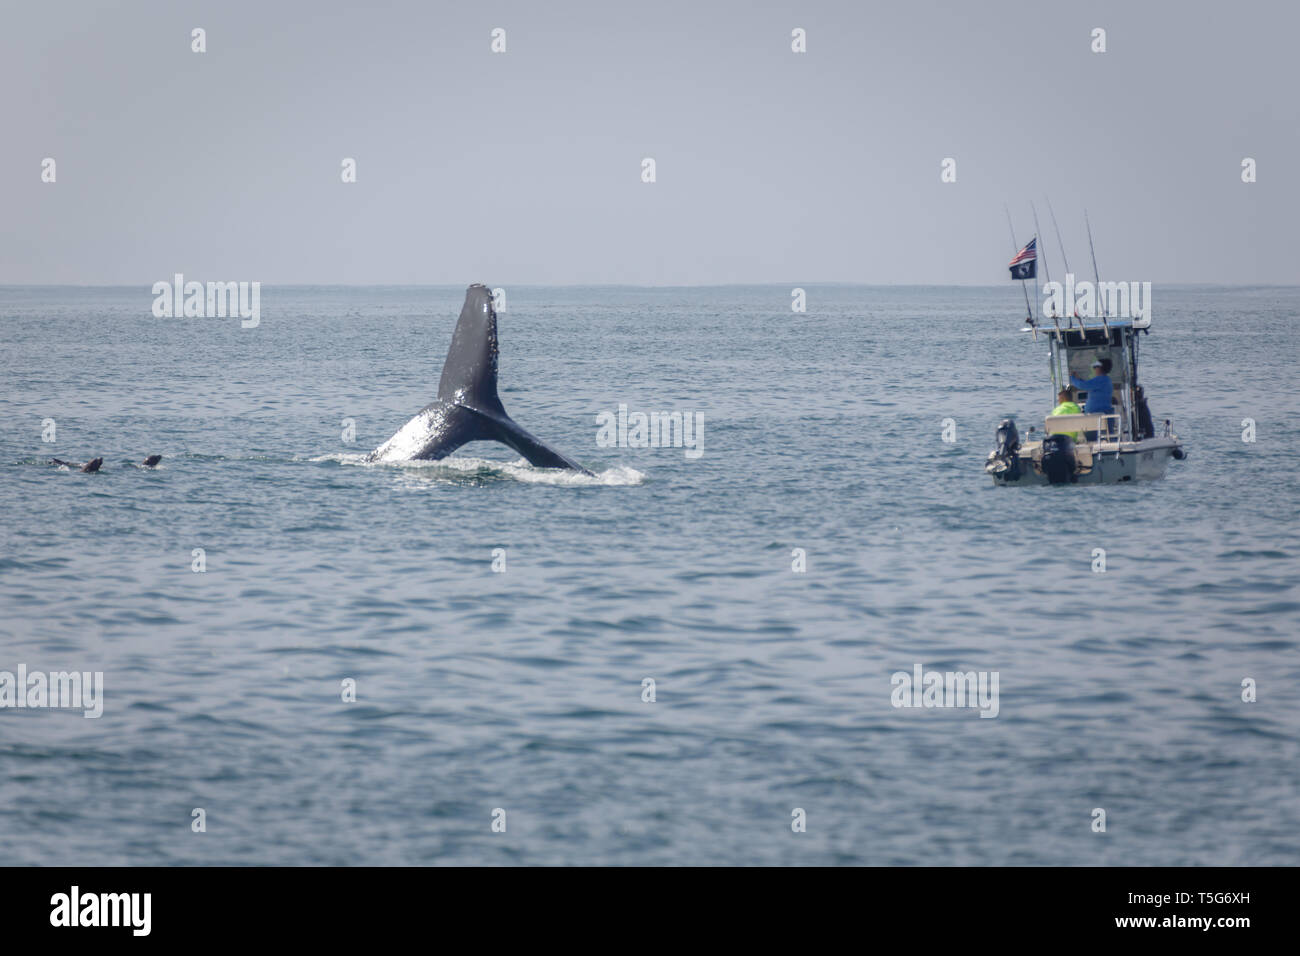 Closeup of a small boat dangerously close to the fluke of a whale lobtailing in the ocean with two seals nearby - Stock Image